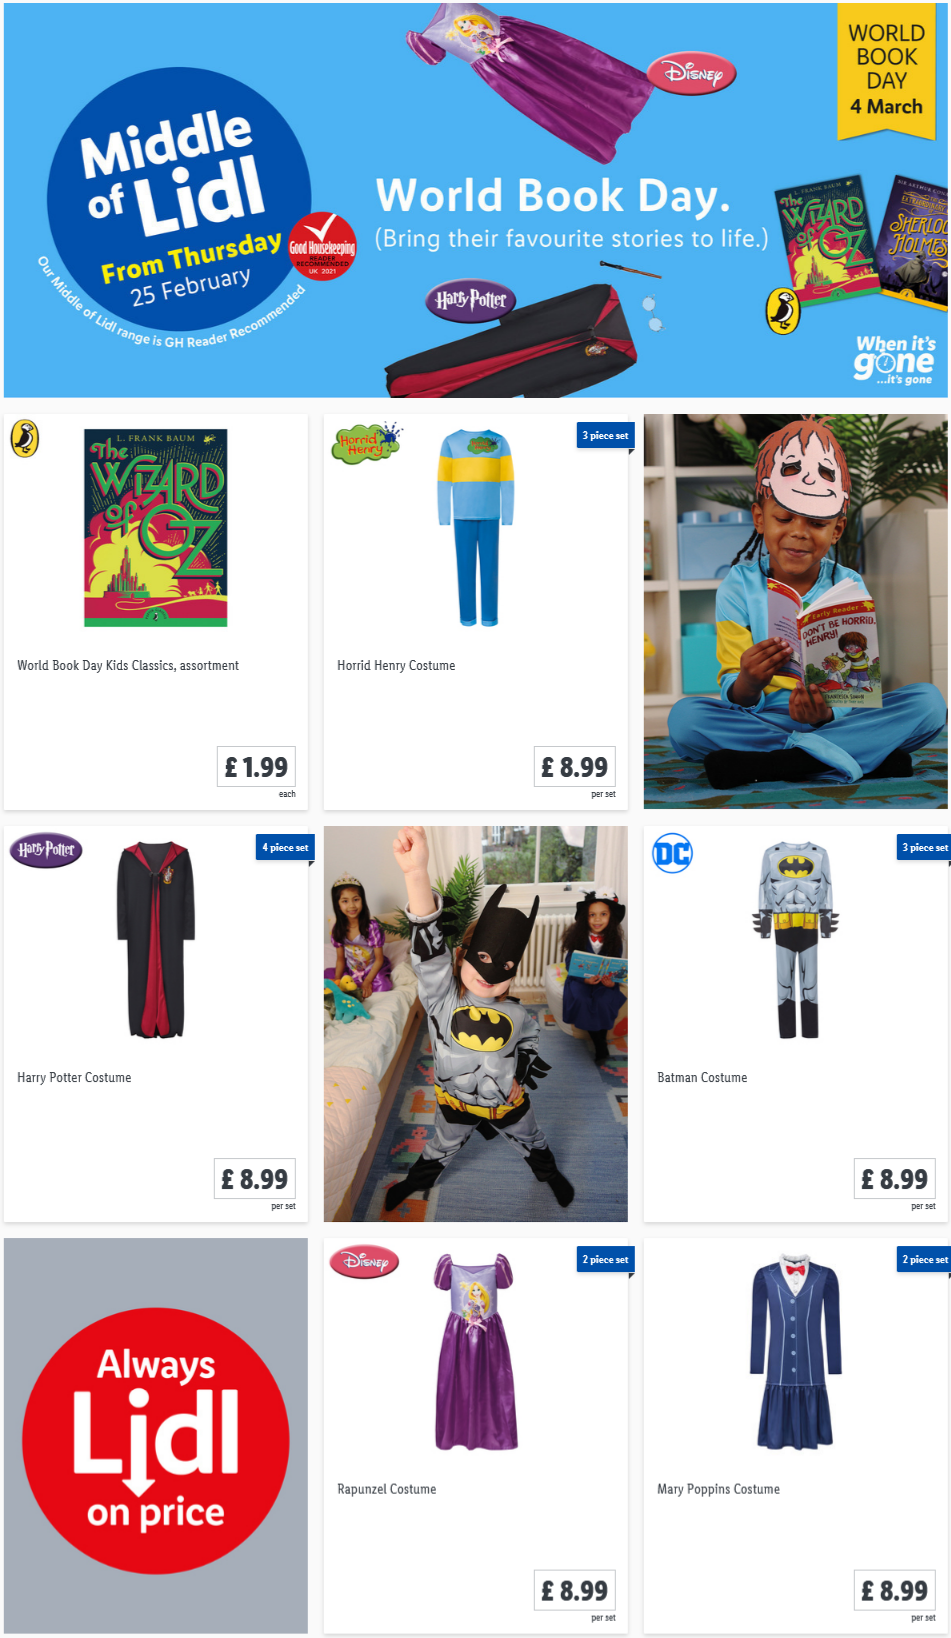 LIDL World Book Day Offers From Thursday 25th February 2021